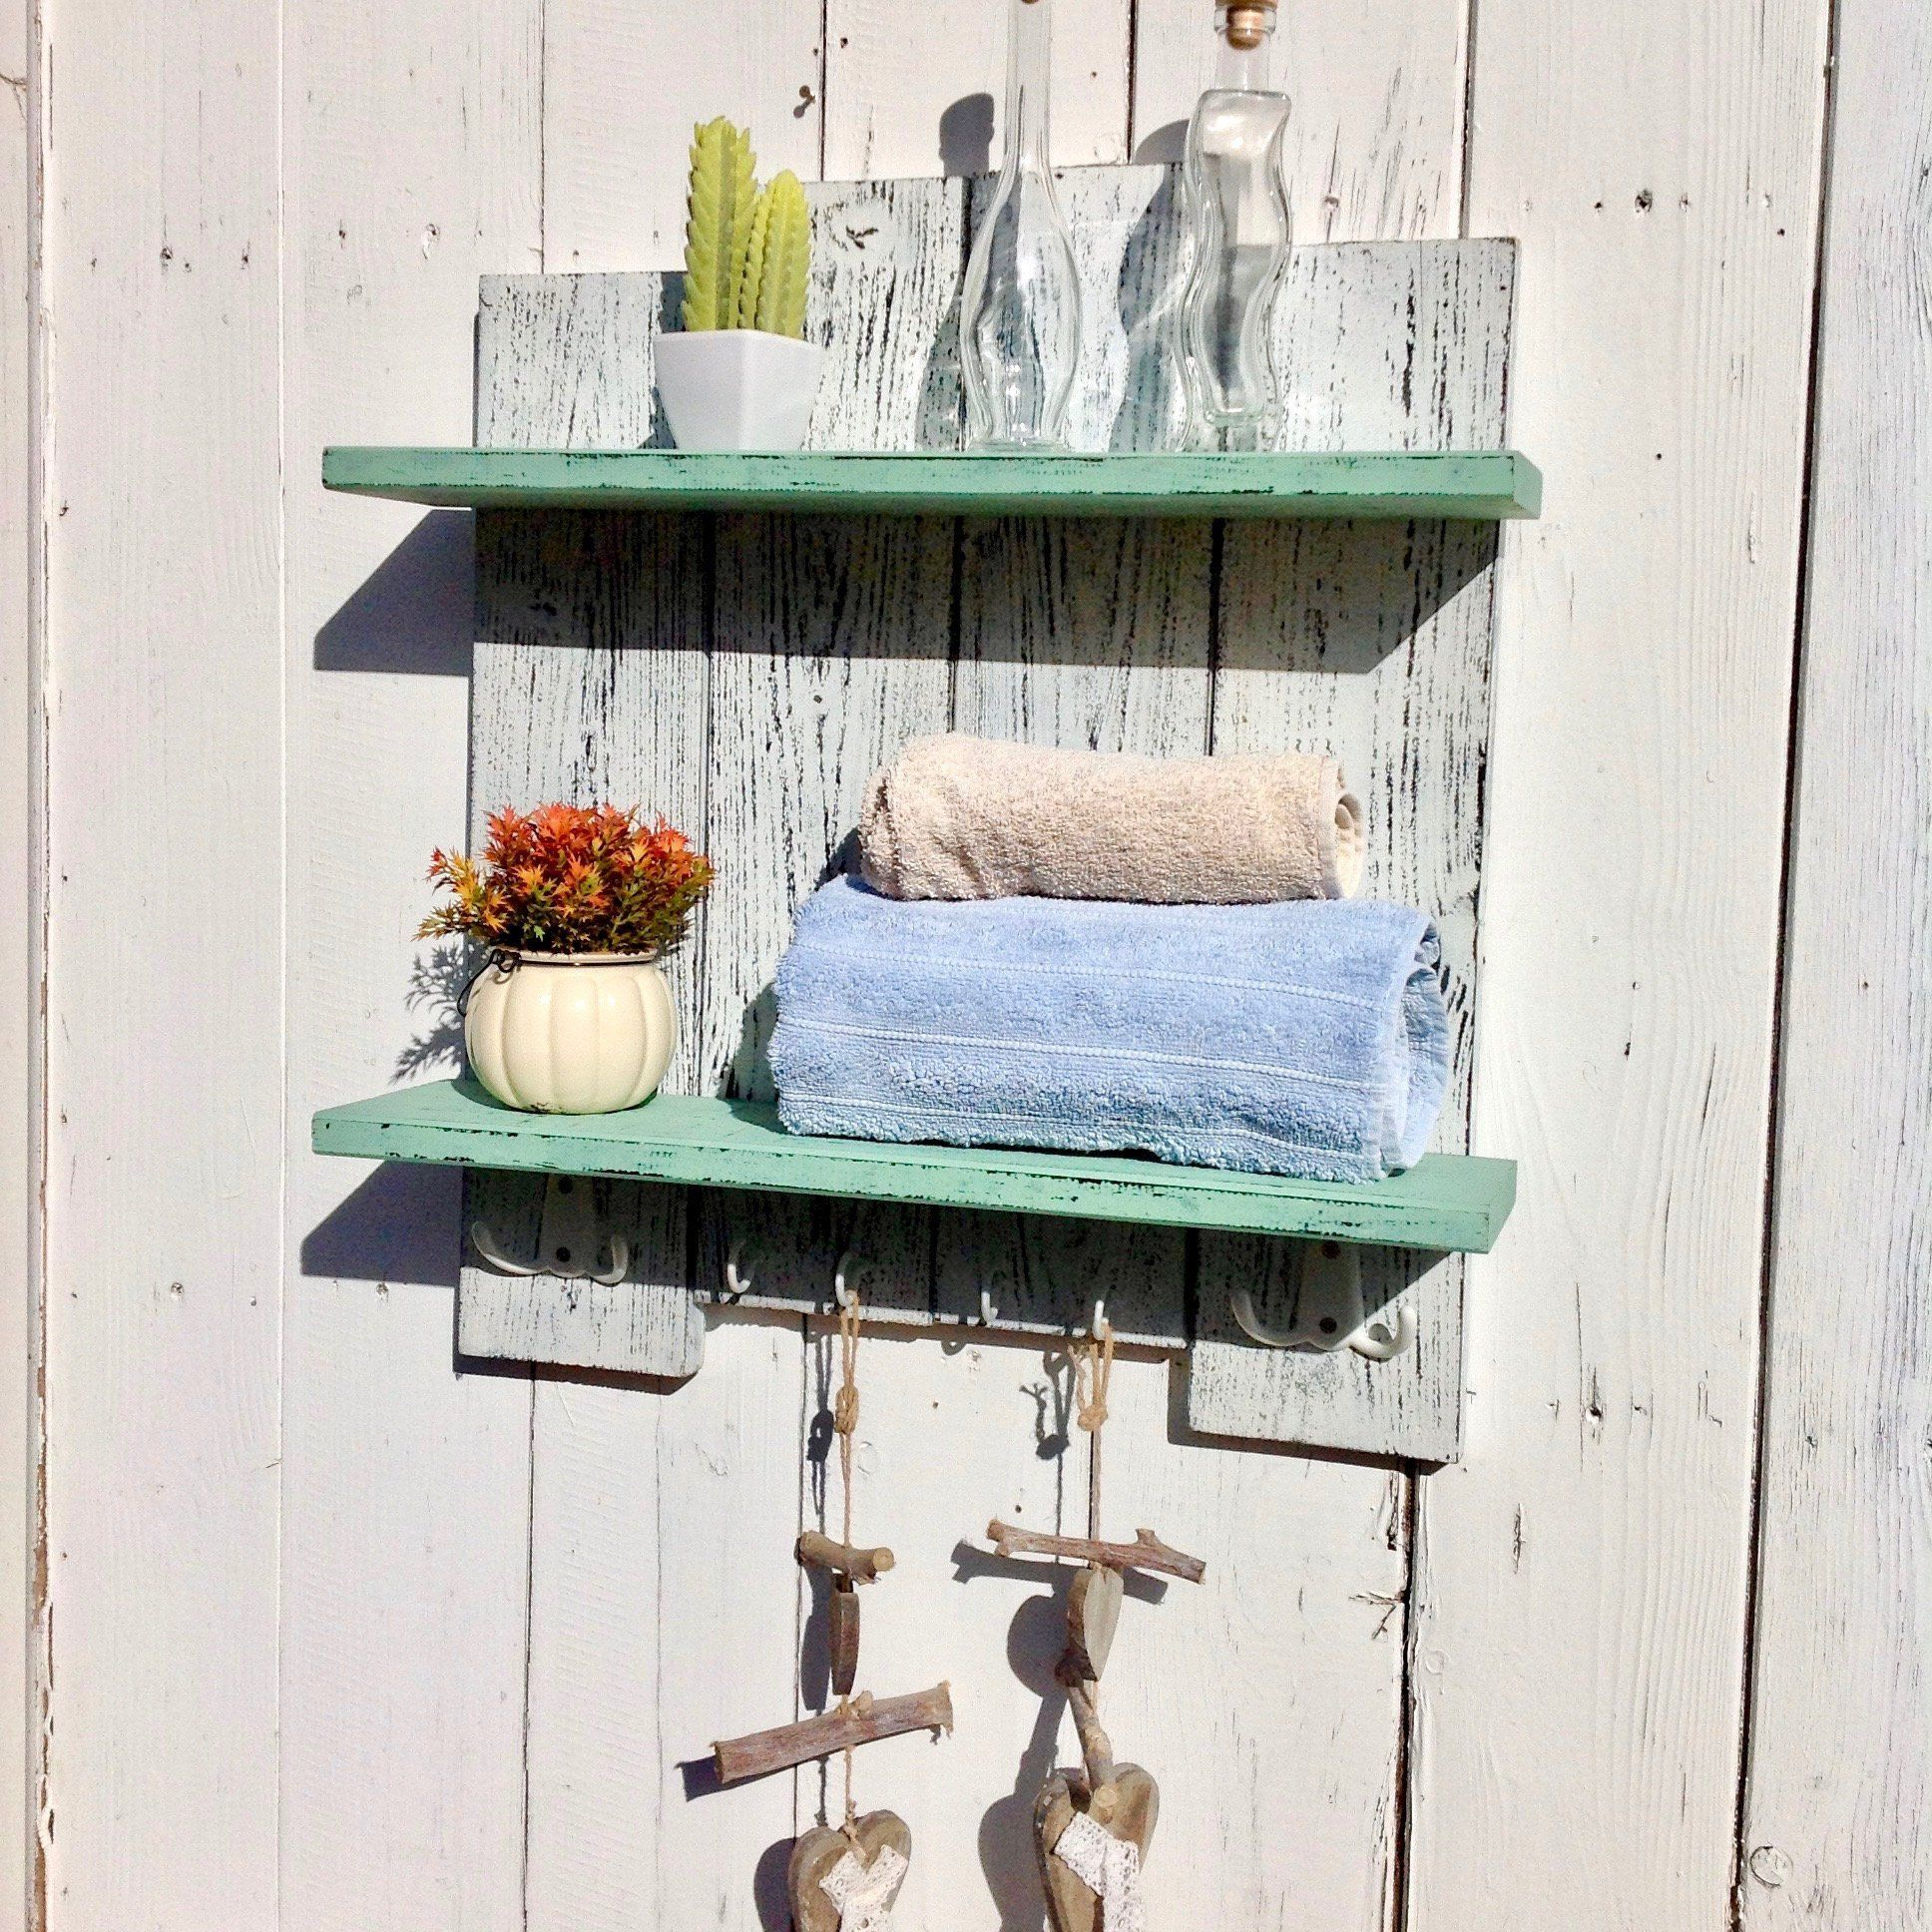 Bathroom rustic wooden shelf hook. Unit shelves. This